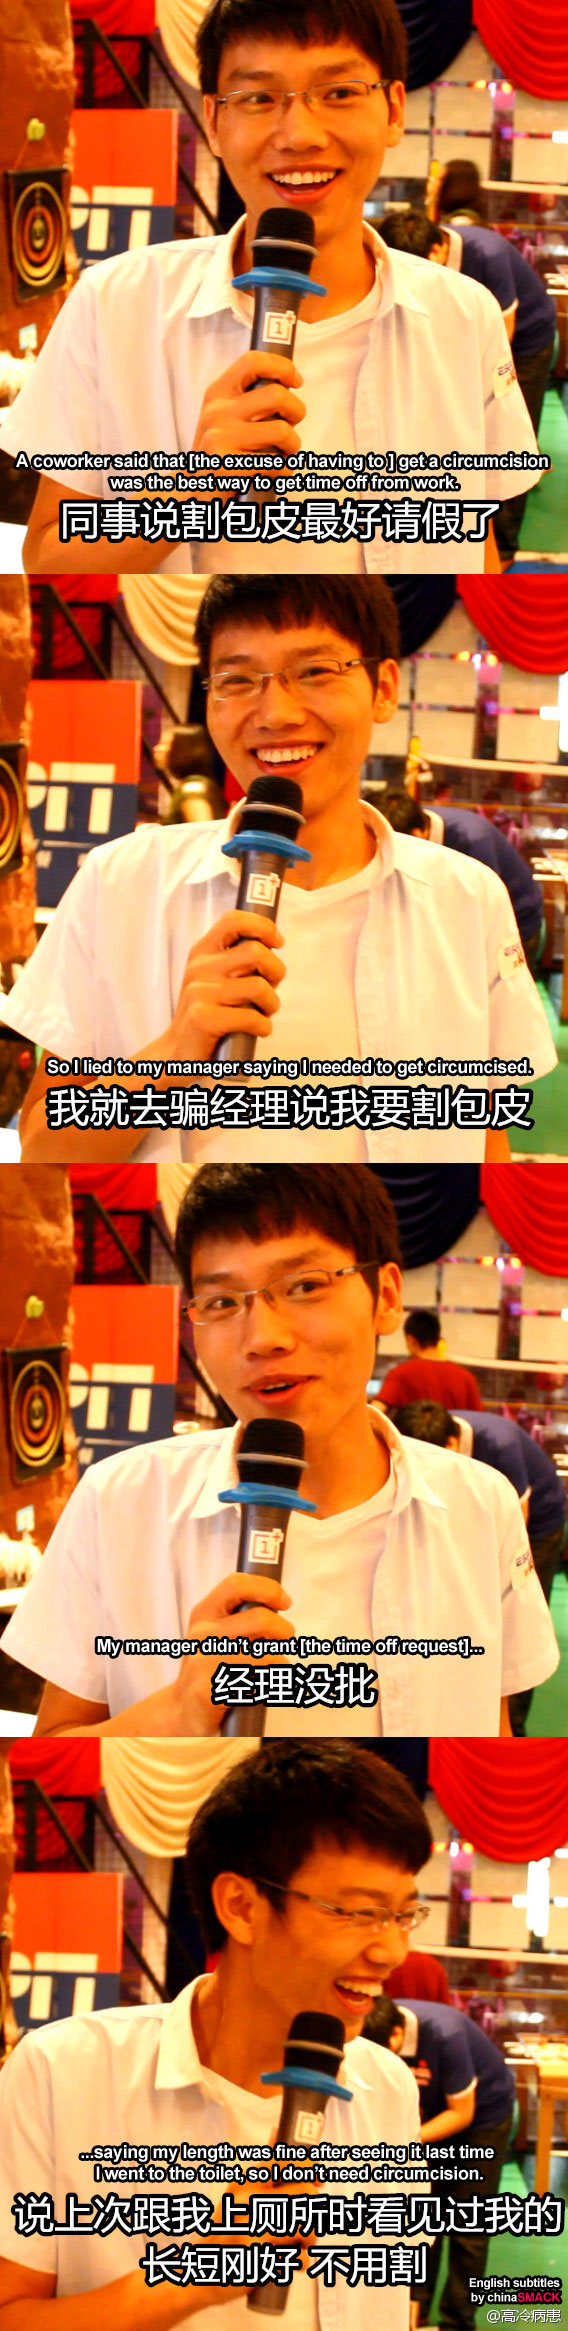 chinese-netizen-excuses-for-bosses-wives-to-watch-world-cup-09-circumcision-english-subtitles